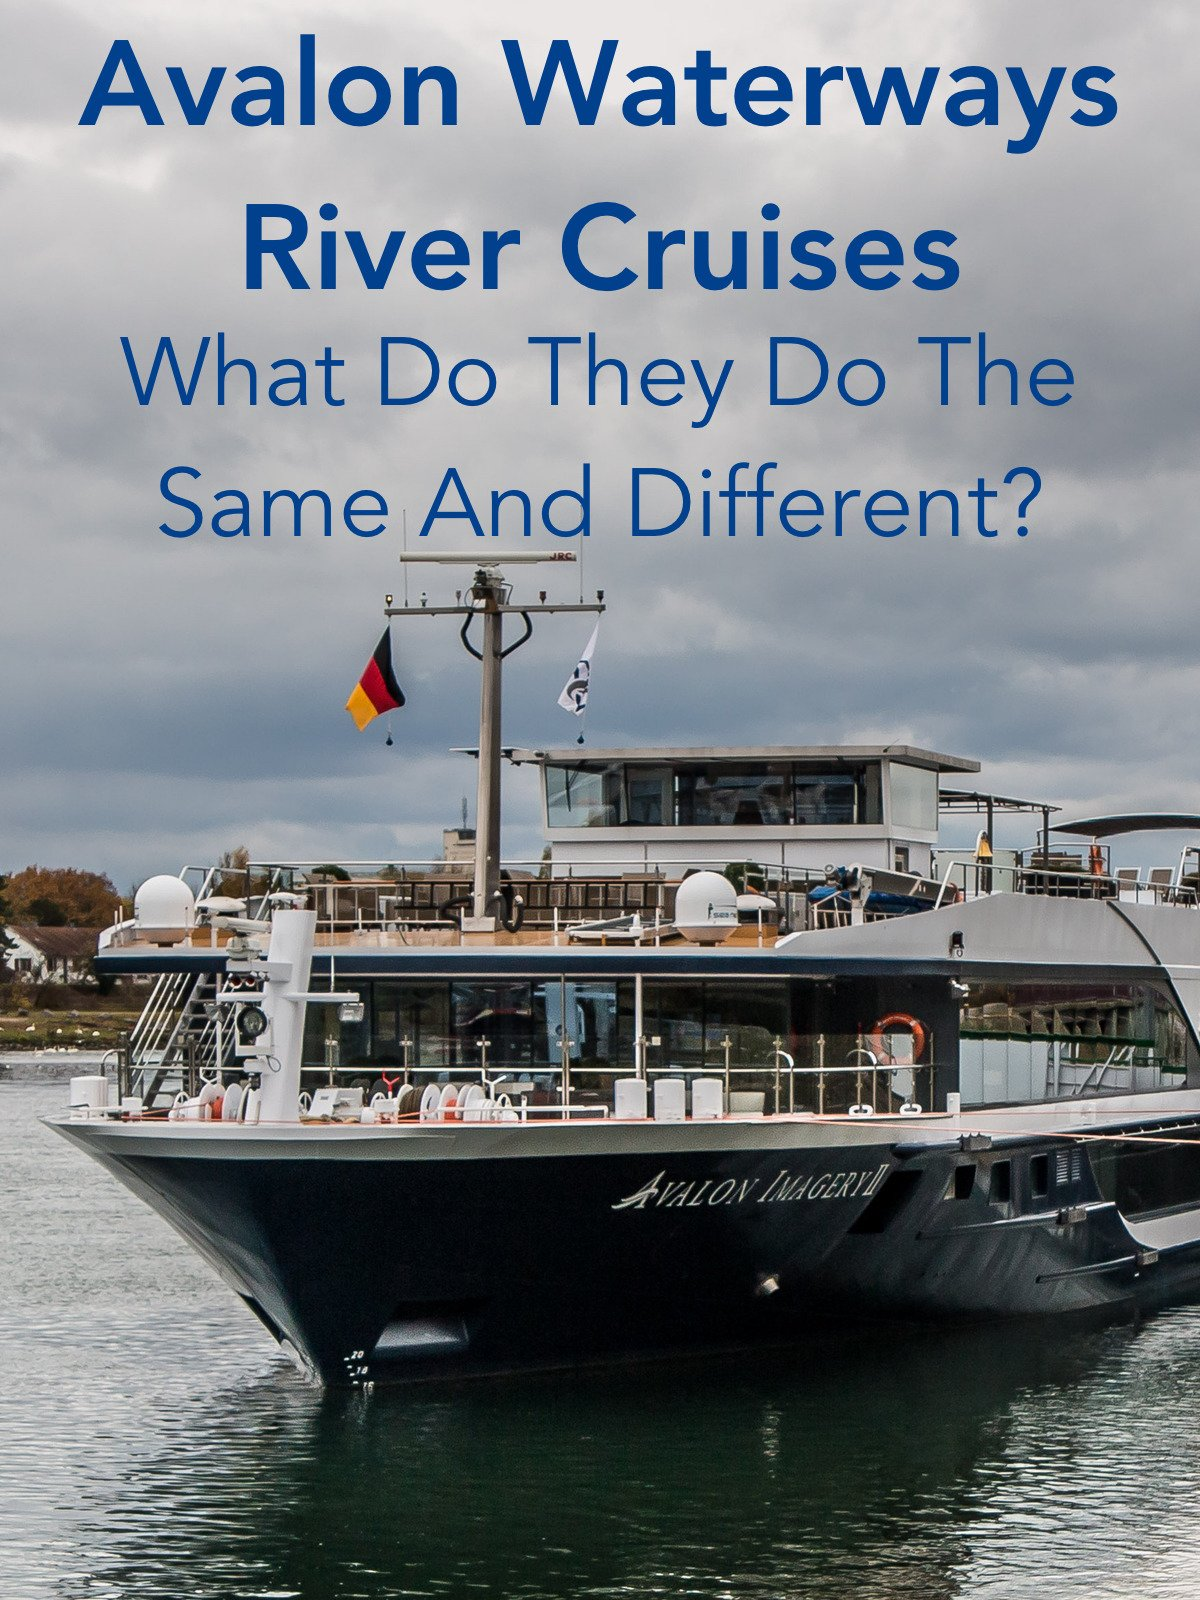 Avalon Waterways River Cruises. What Do They Do The Same And Different?